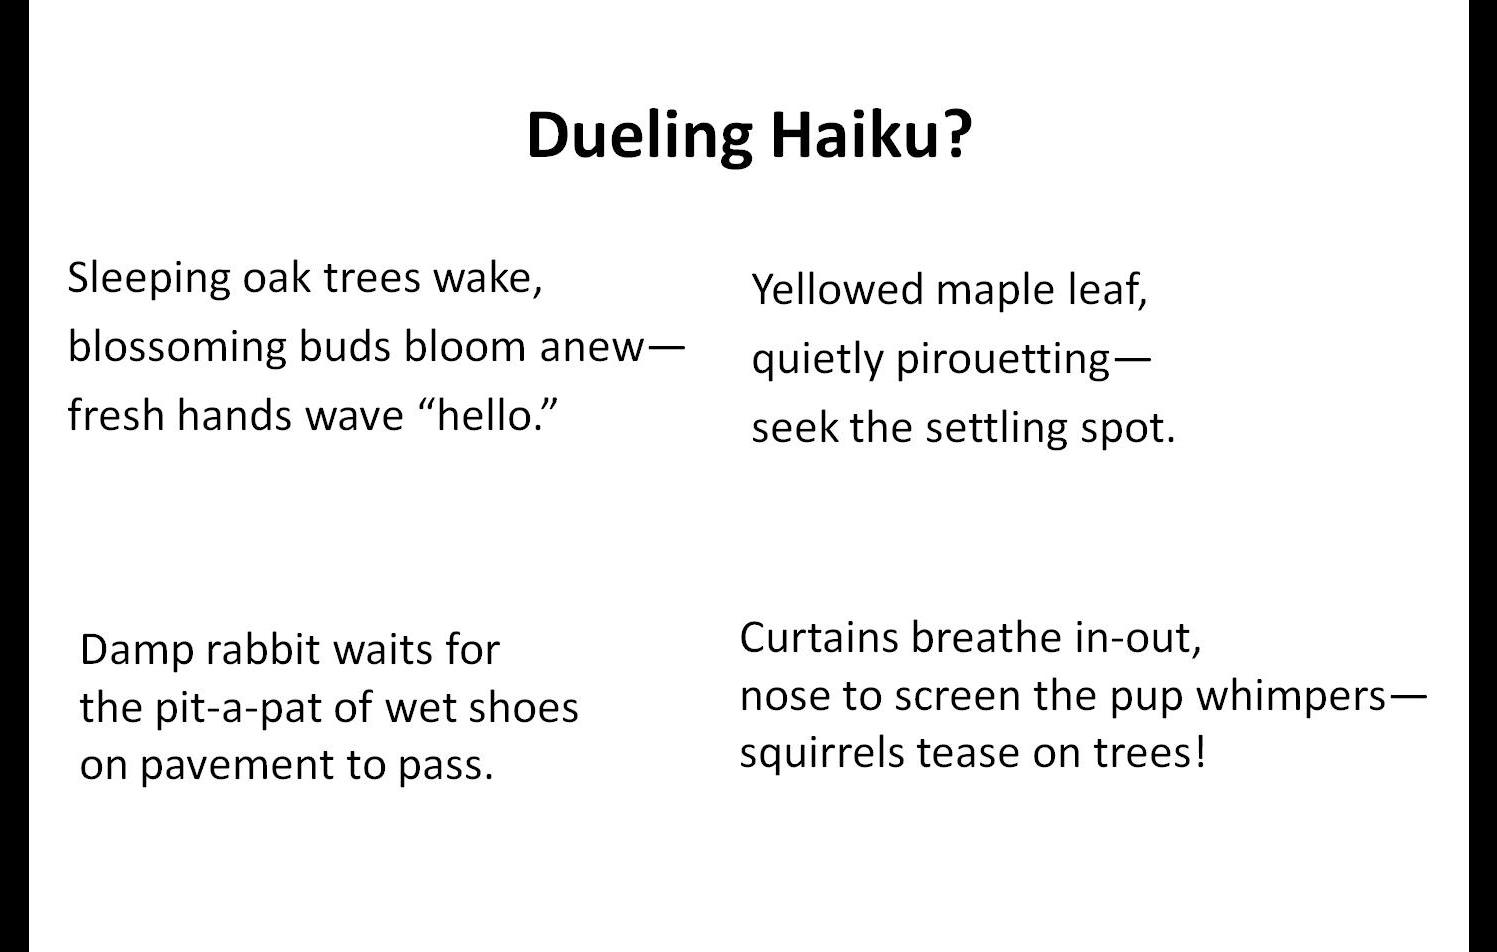 Haiku Poems Format